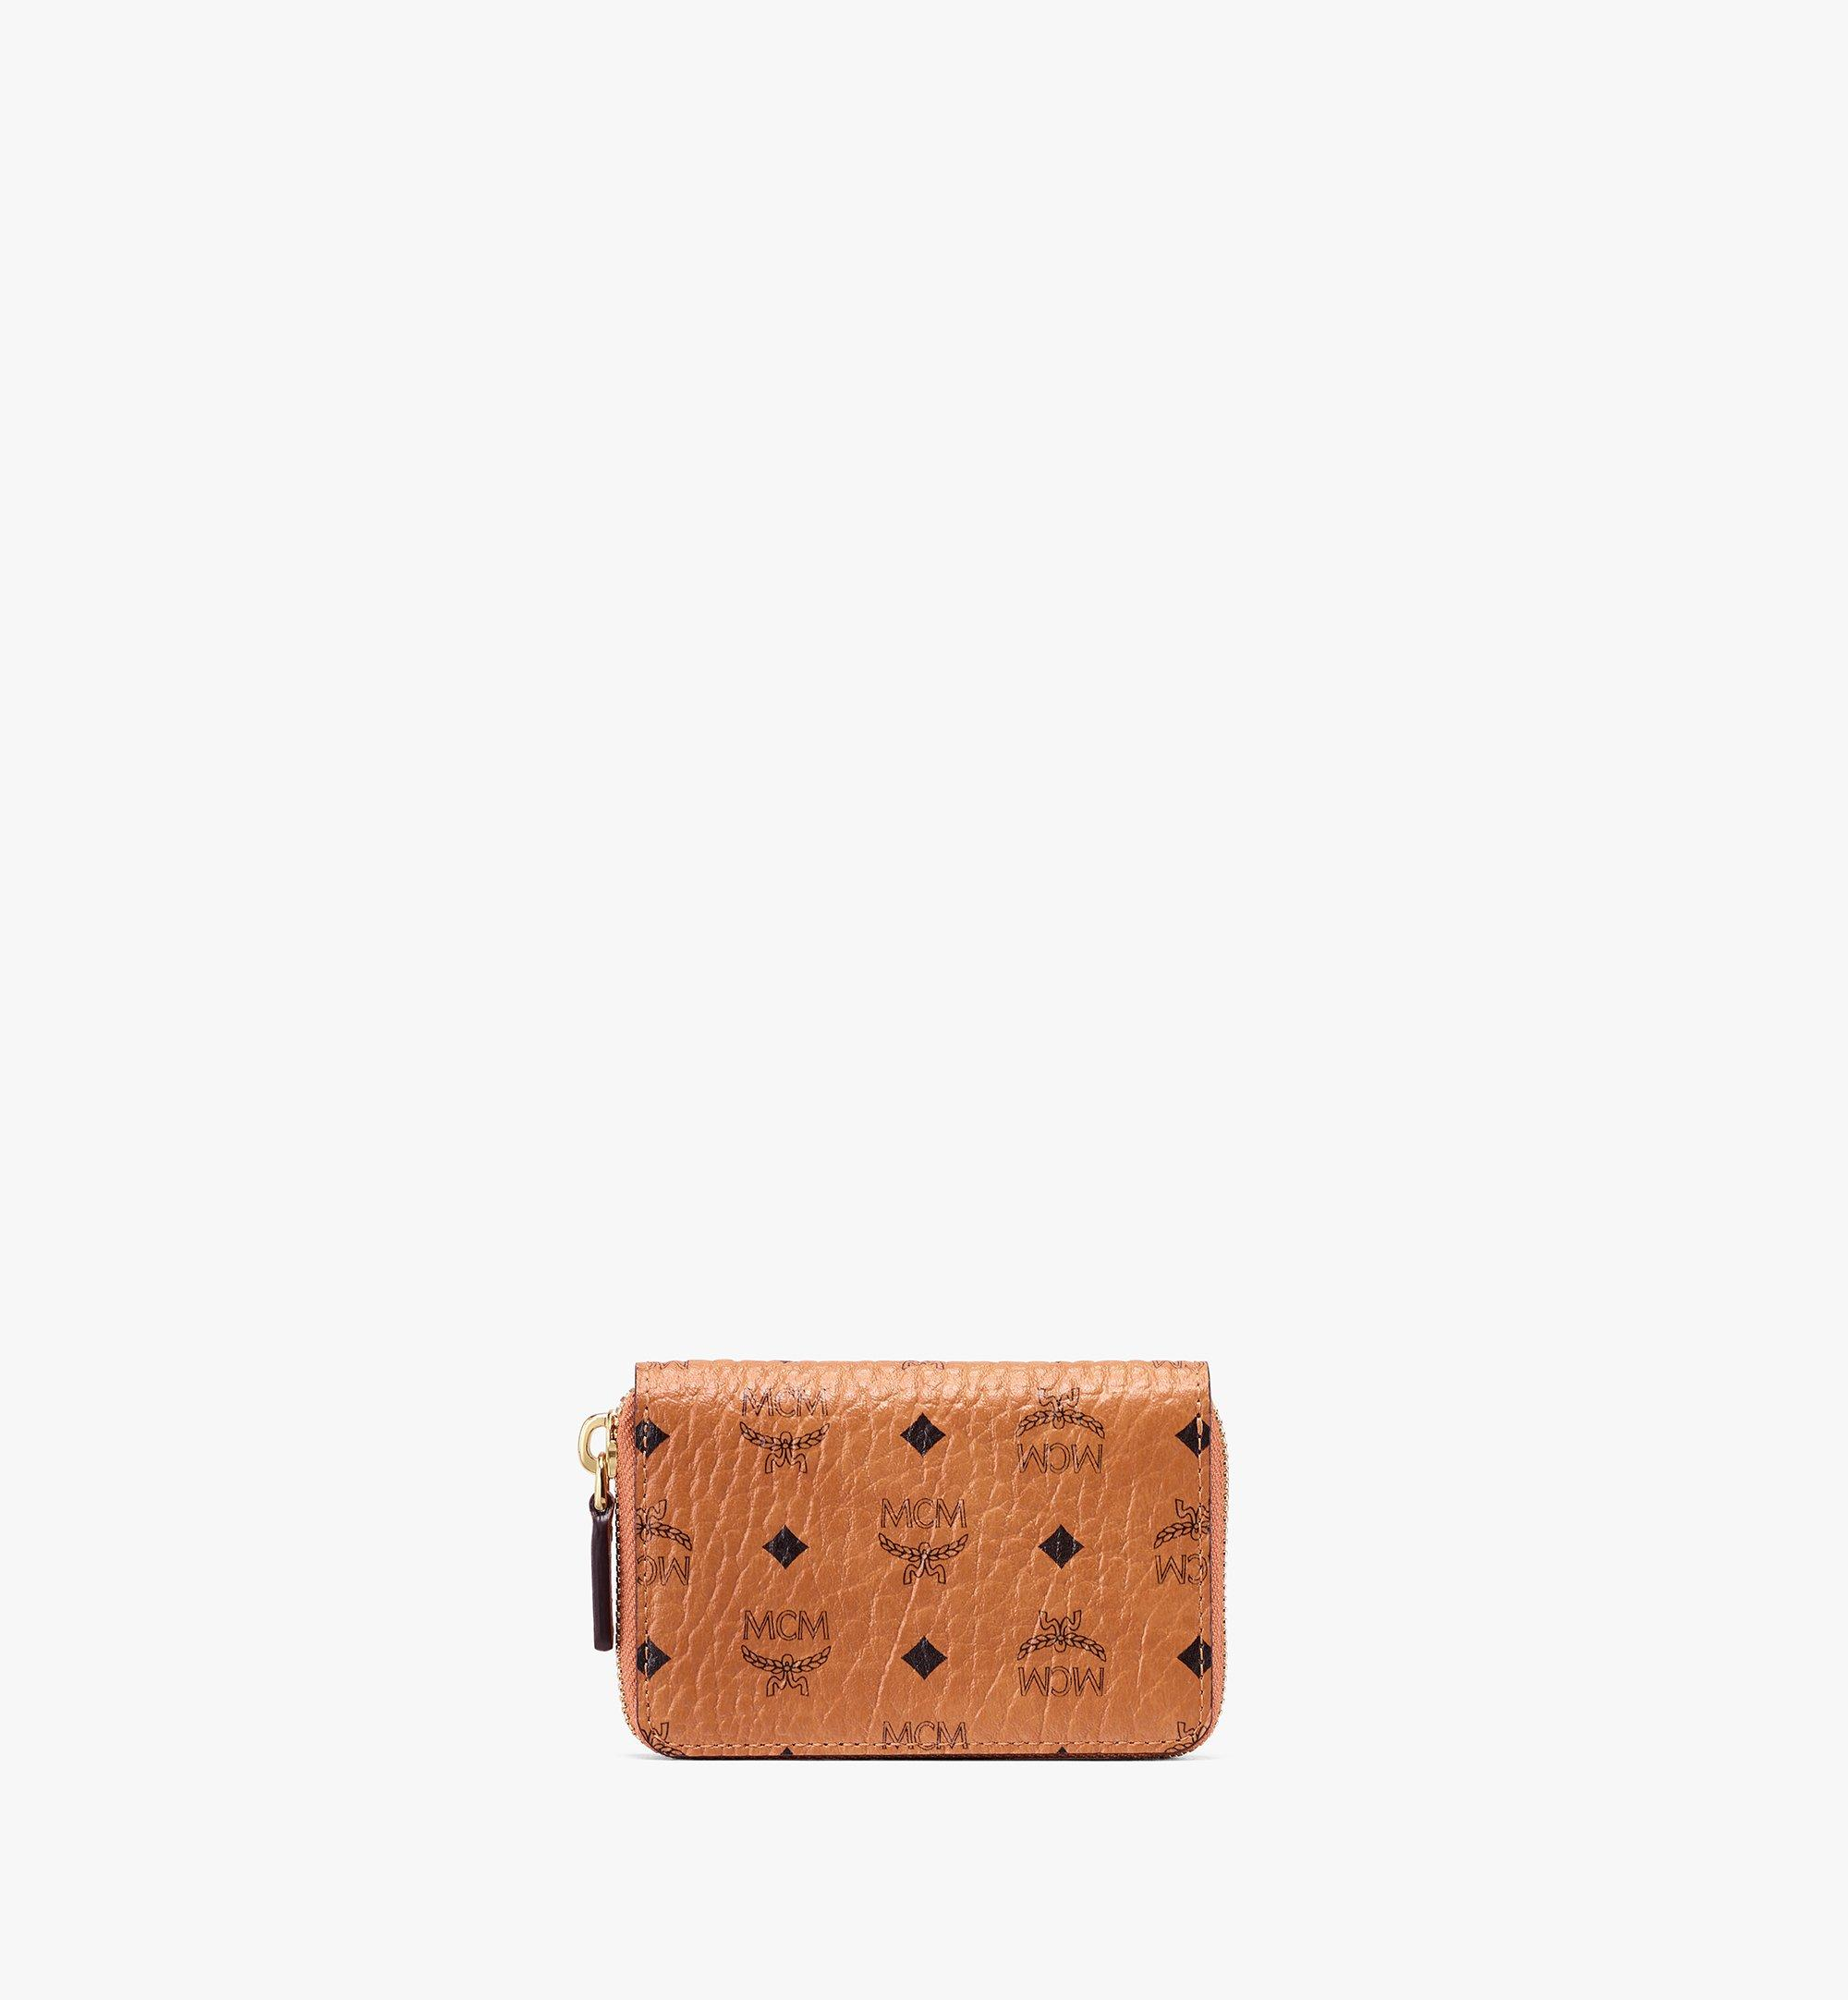 MCM Zip Wallet in Visetos  MXZ9AVI57CO001 Alternate View 1